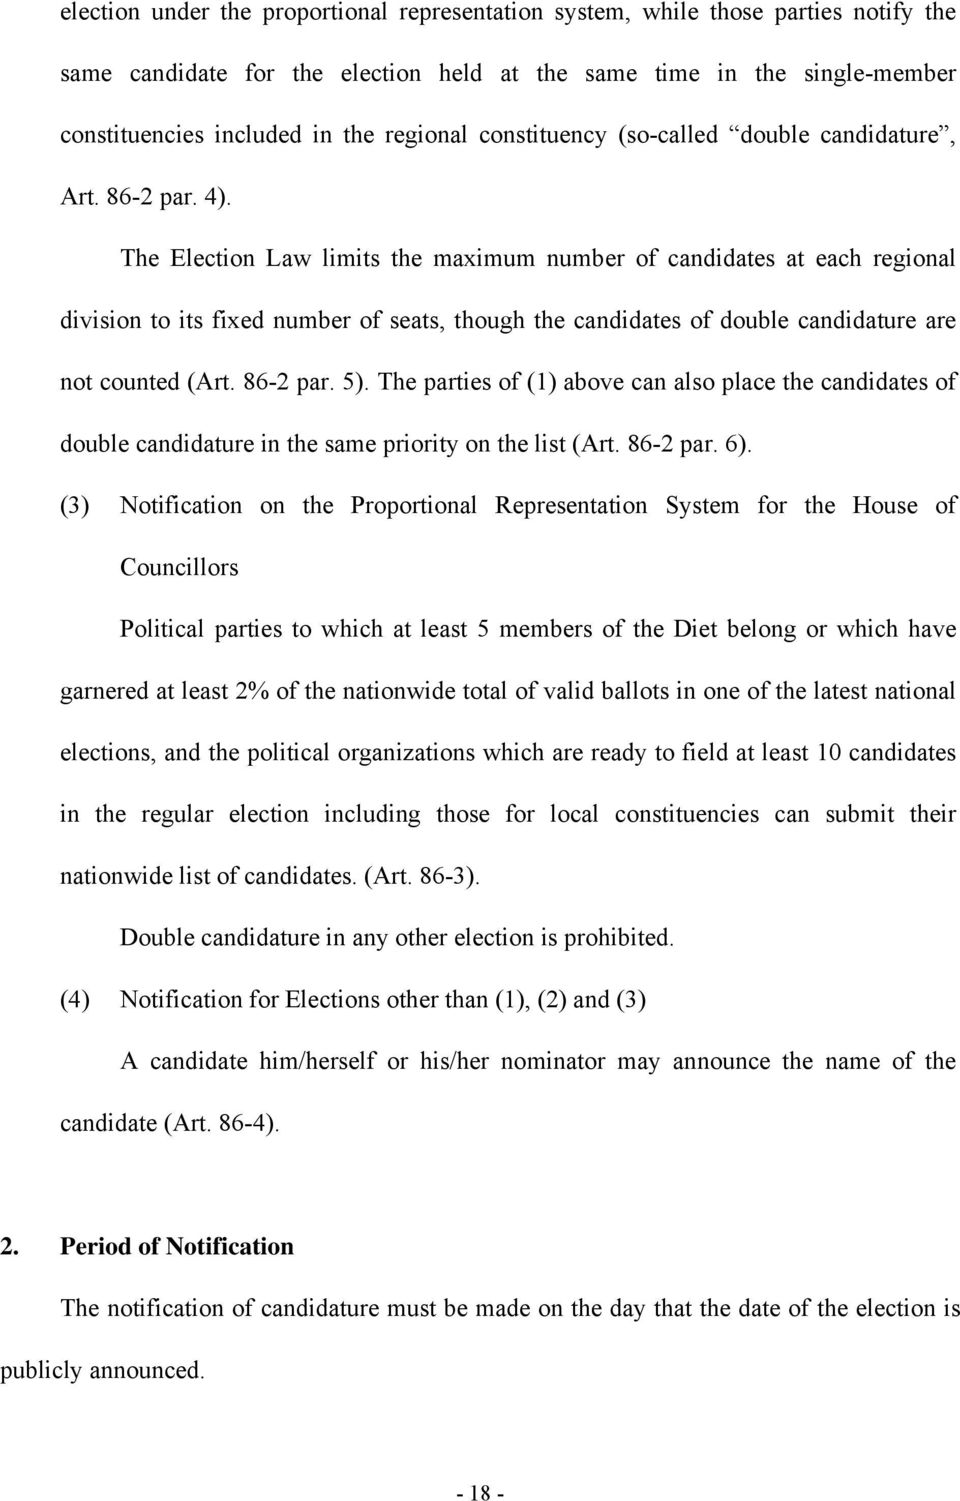 The Election Law limits the maximum number of candidates at each regional division to its fixed number of seats, though the candidates of double candidature are not counted (Art. 86-2 par. 5).